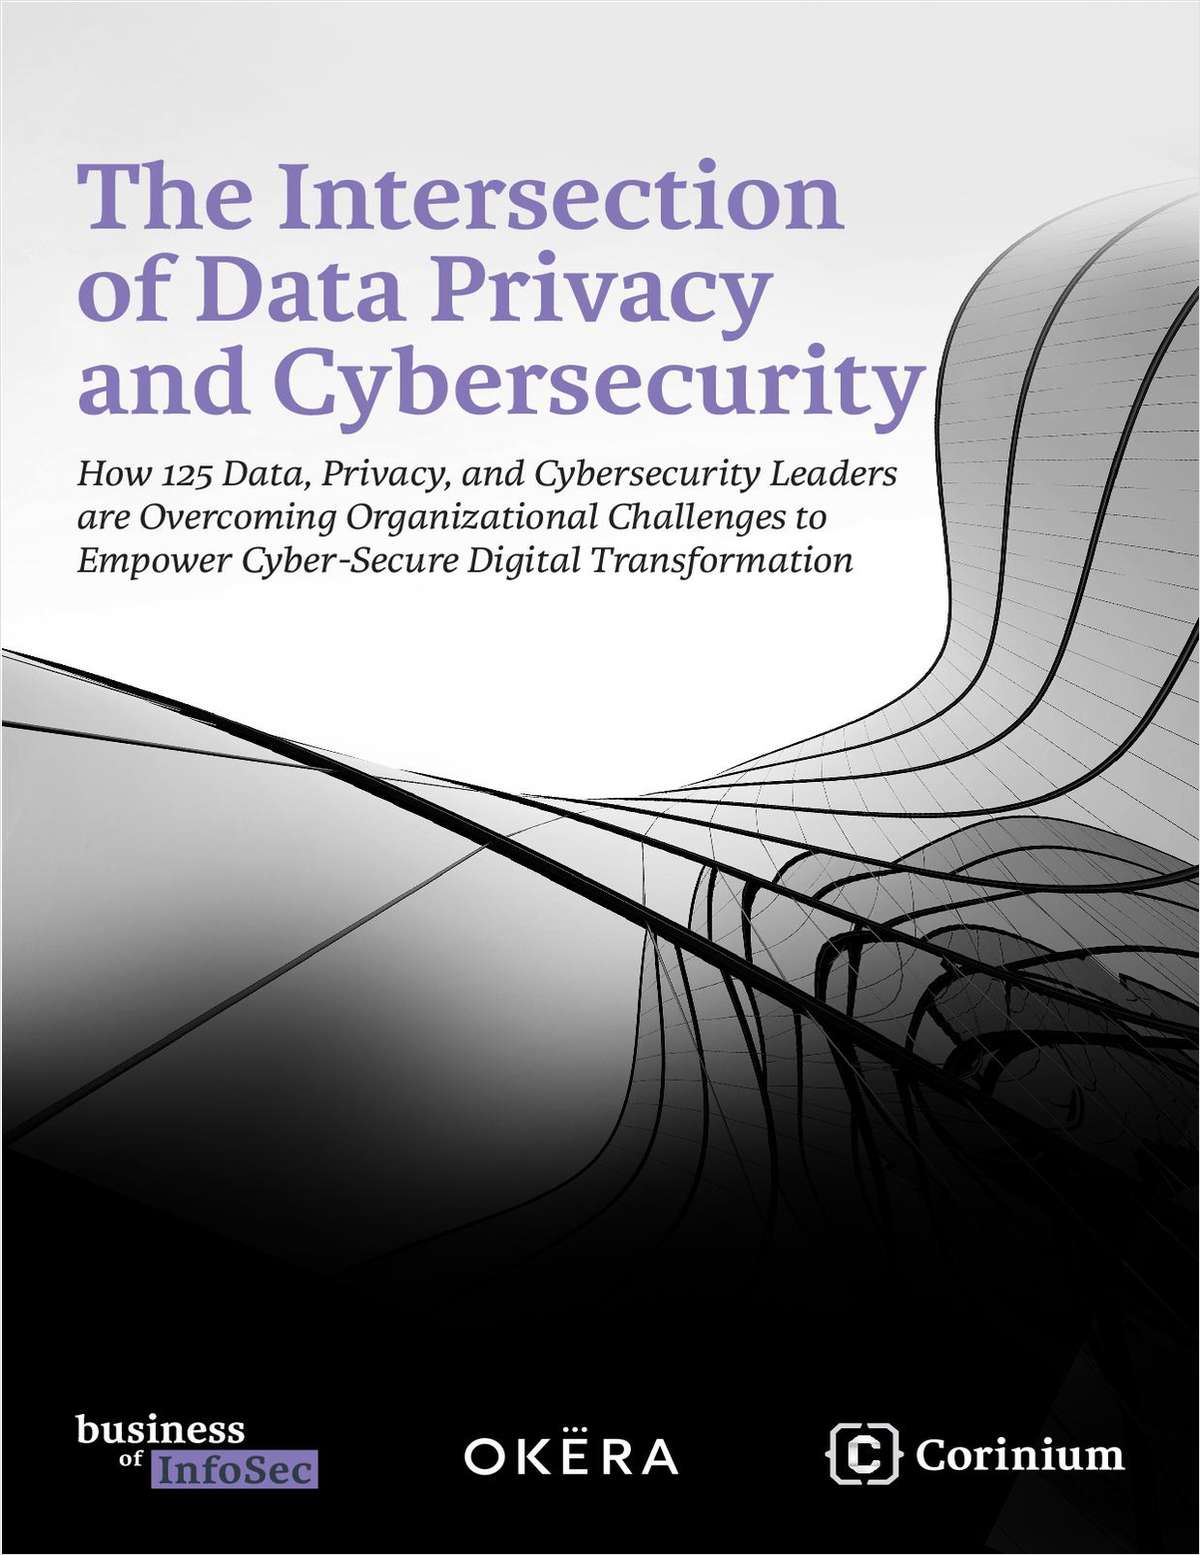 The Intersection of Data Privacy and Cybersecurity